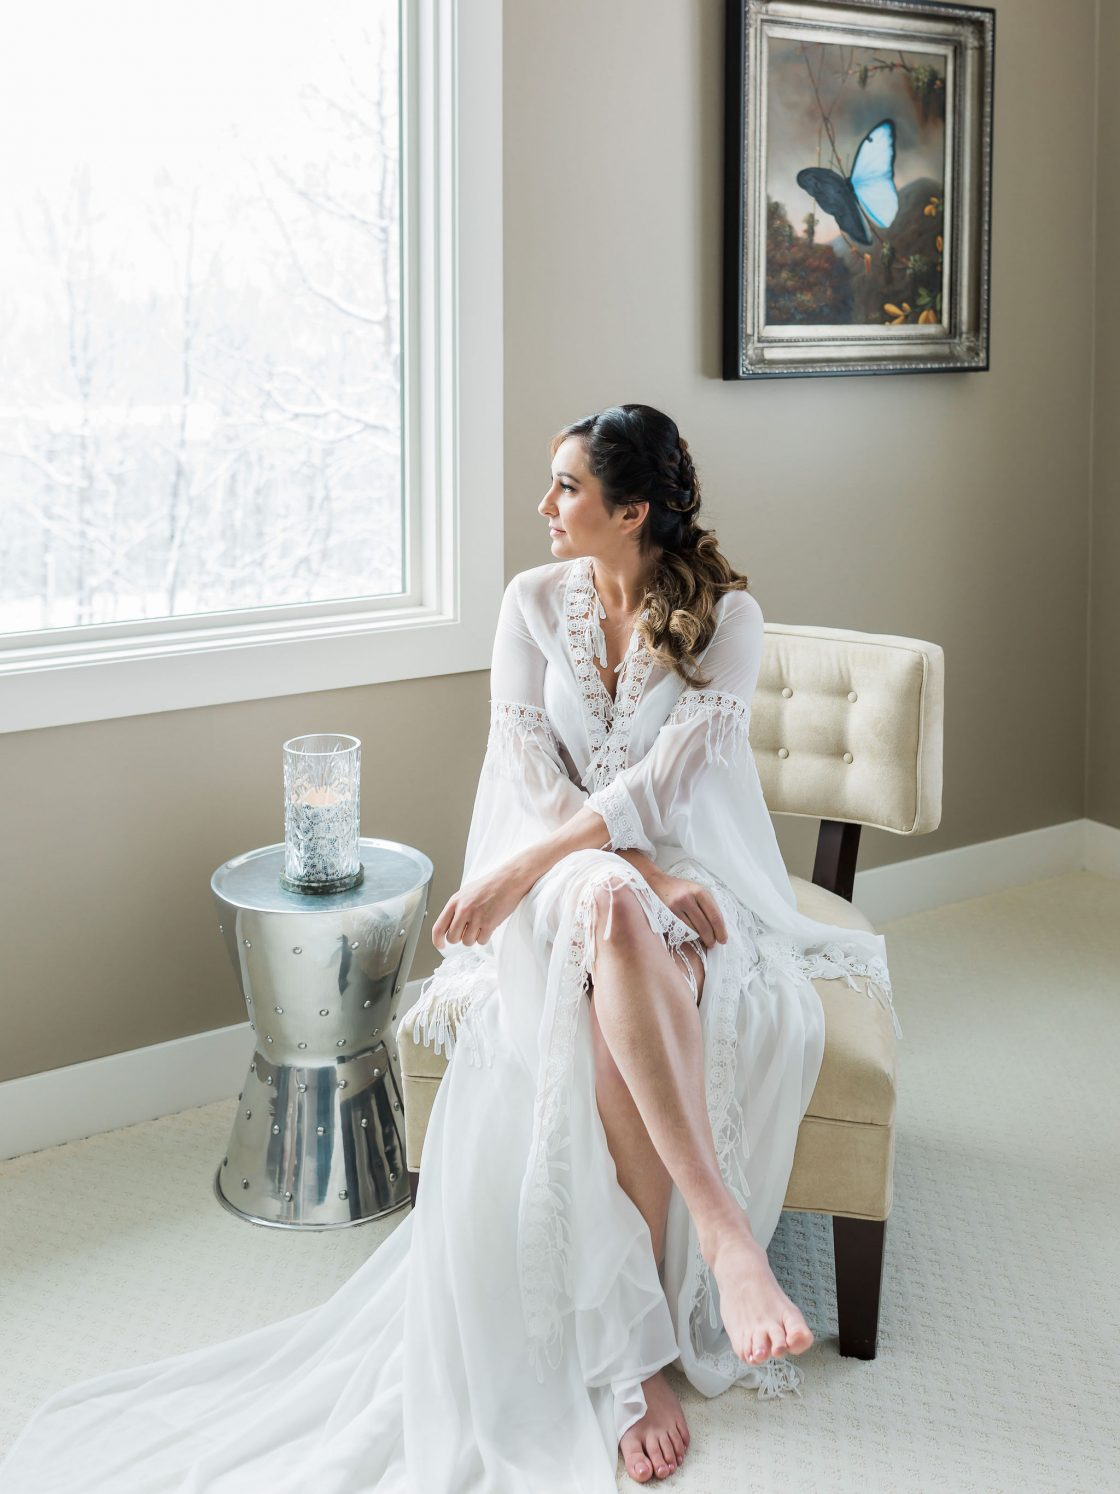 ElegantWinterWedding AnchorageAlaska 44